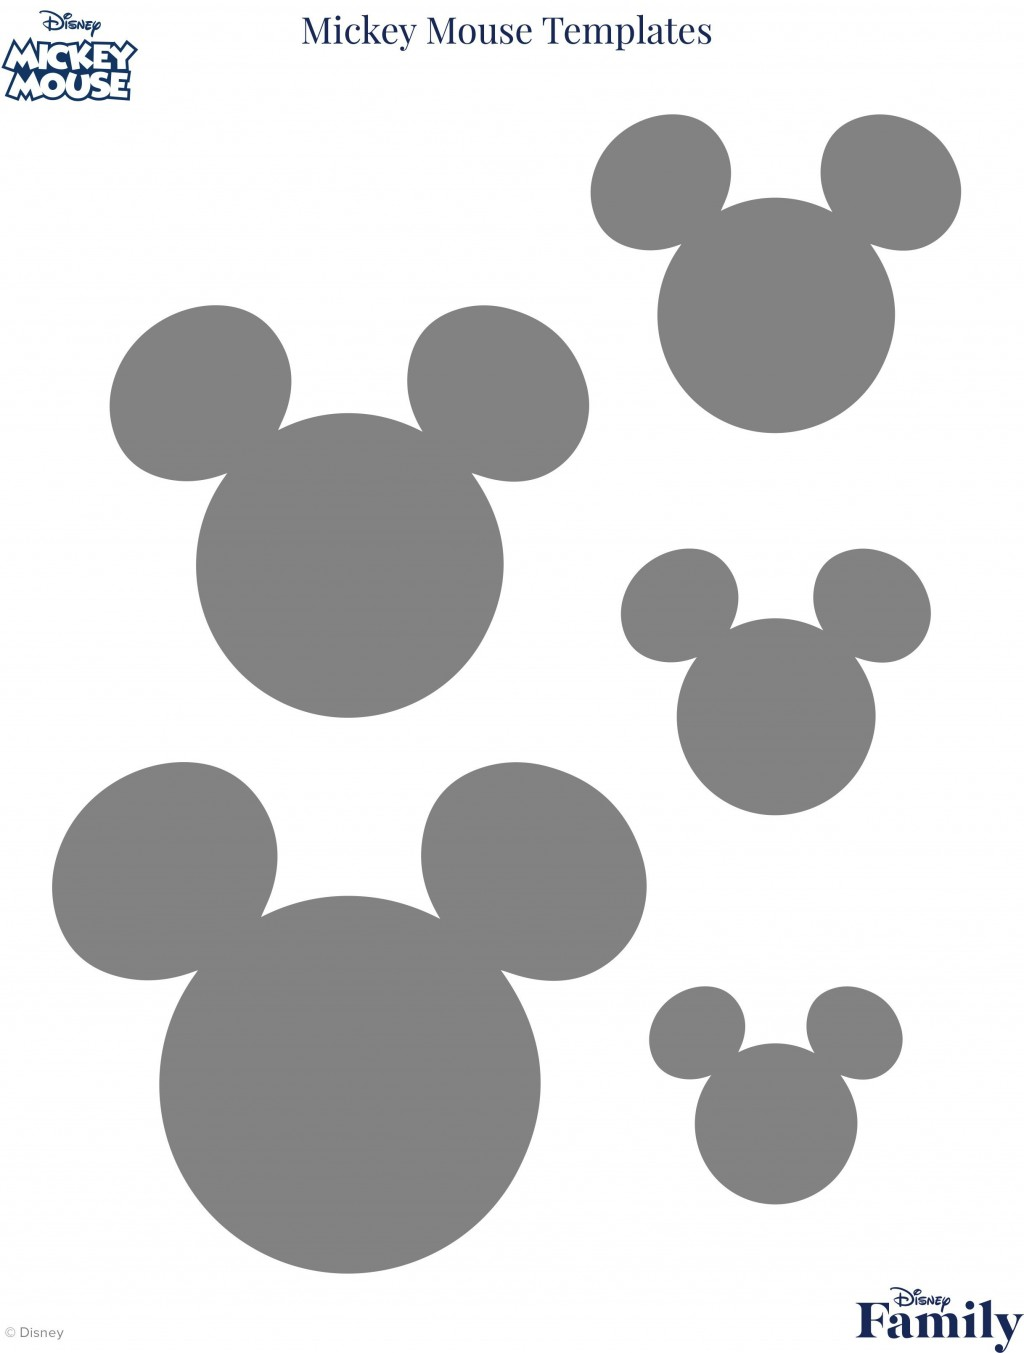 007 Outstanding Mickey Mouse Face Template For Cake Sample  PrintableLarge